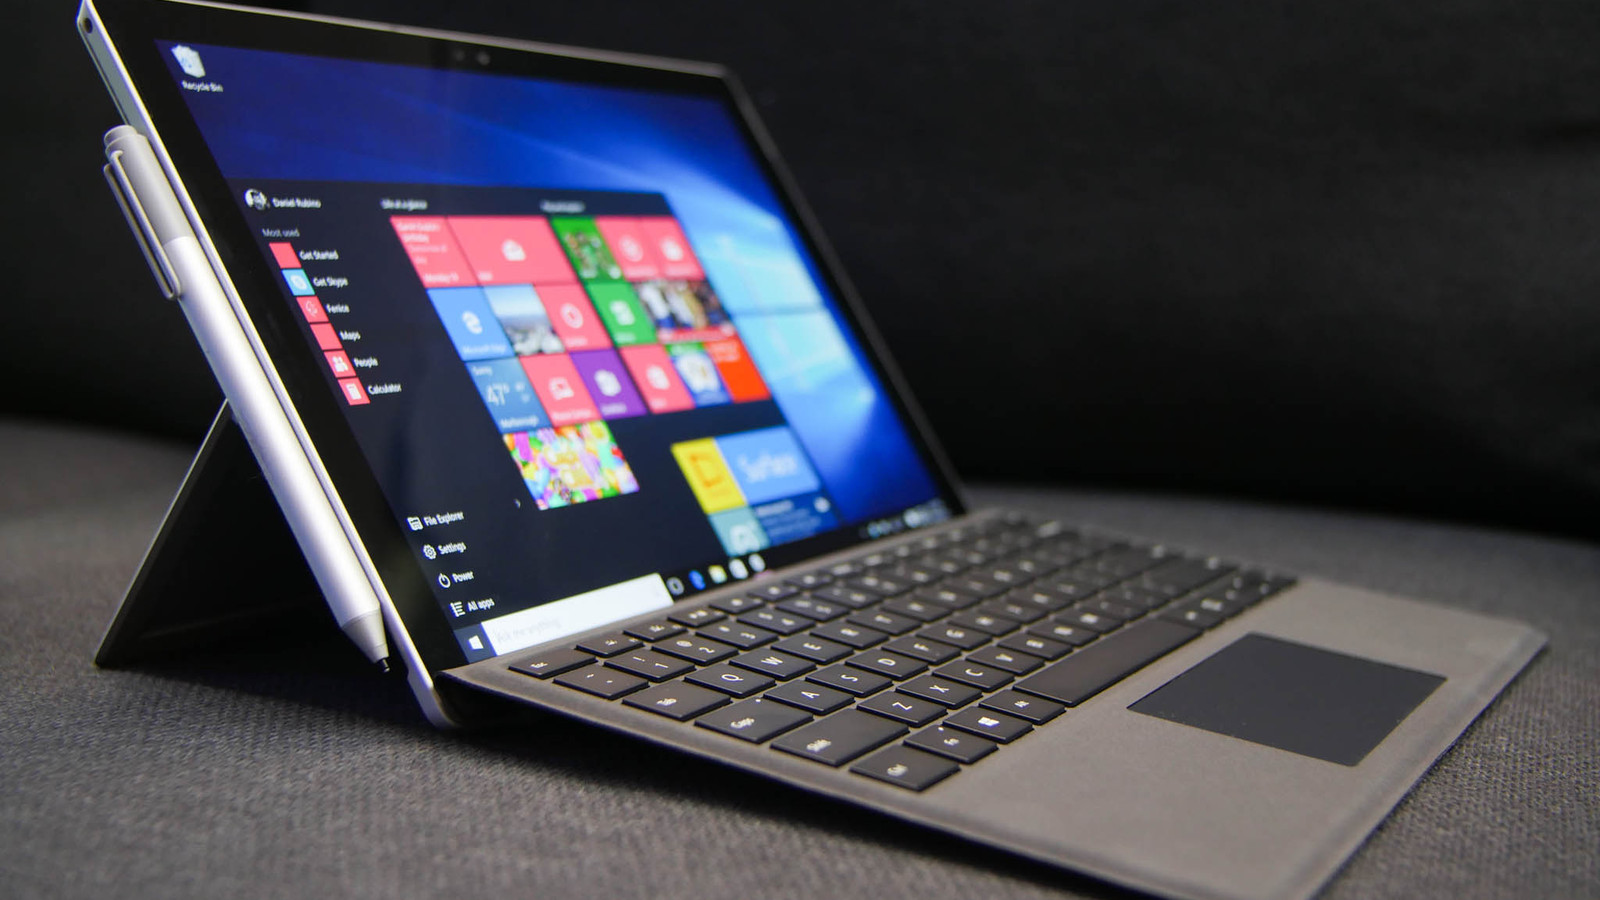 The Powerful Surface Pro 4 Revolutionizes 2-in-1 Technology